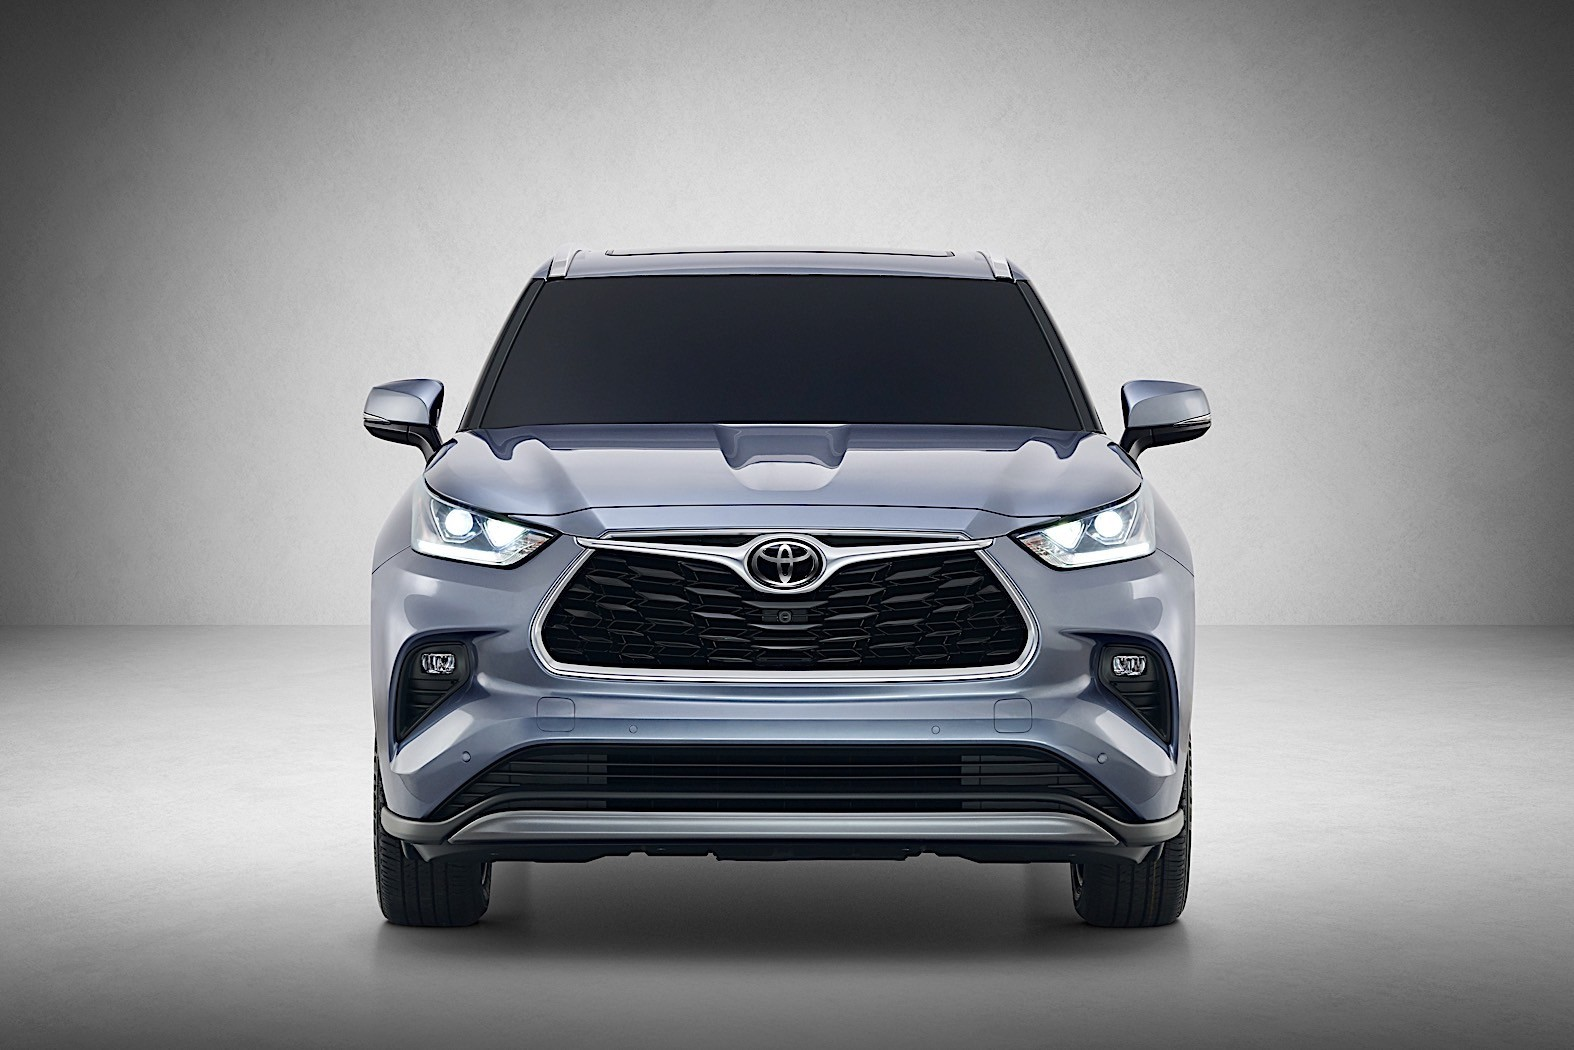 Toyota Ft Ac Concept furthermore Acura Ilx also Toyota Chr Koba Hero besides Interior Toyota Etios moreover Toyota Prius Prime Plus. on 2019 toyota highlander